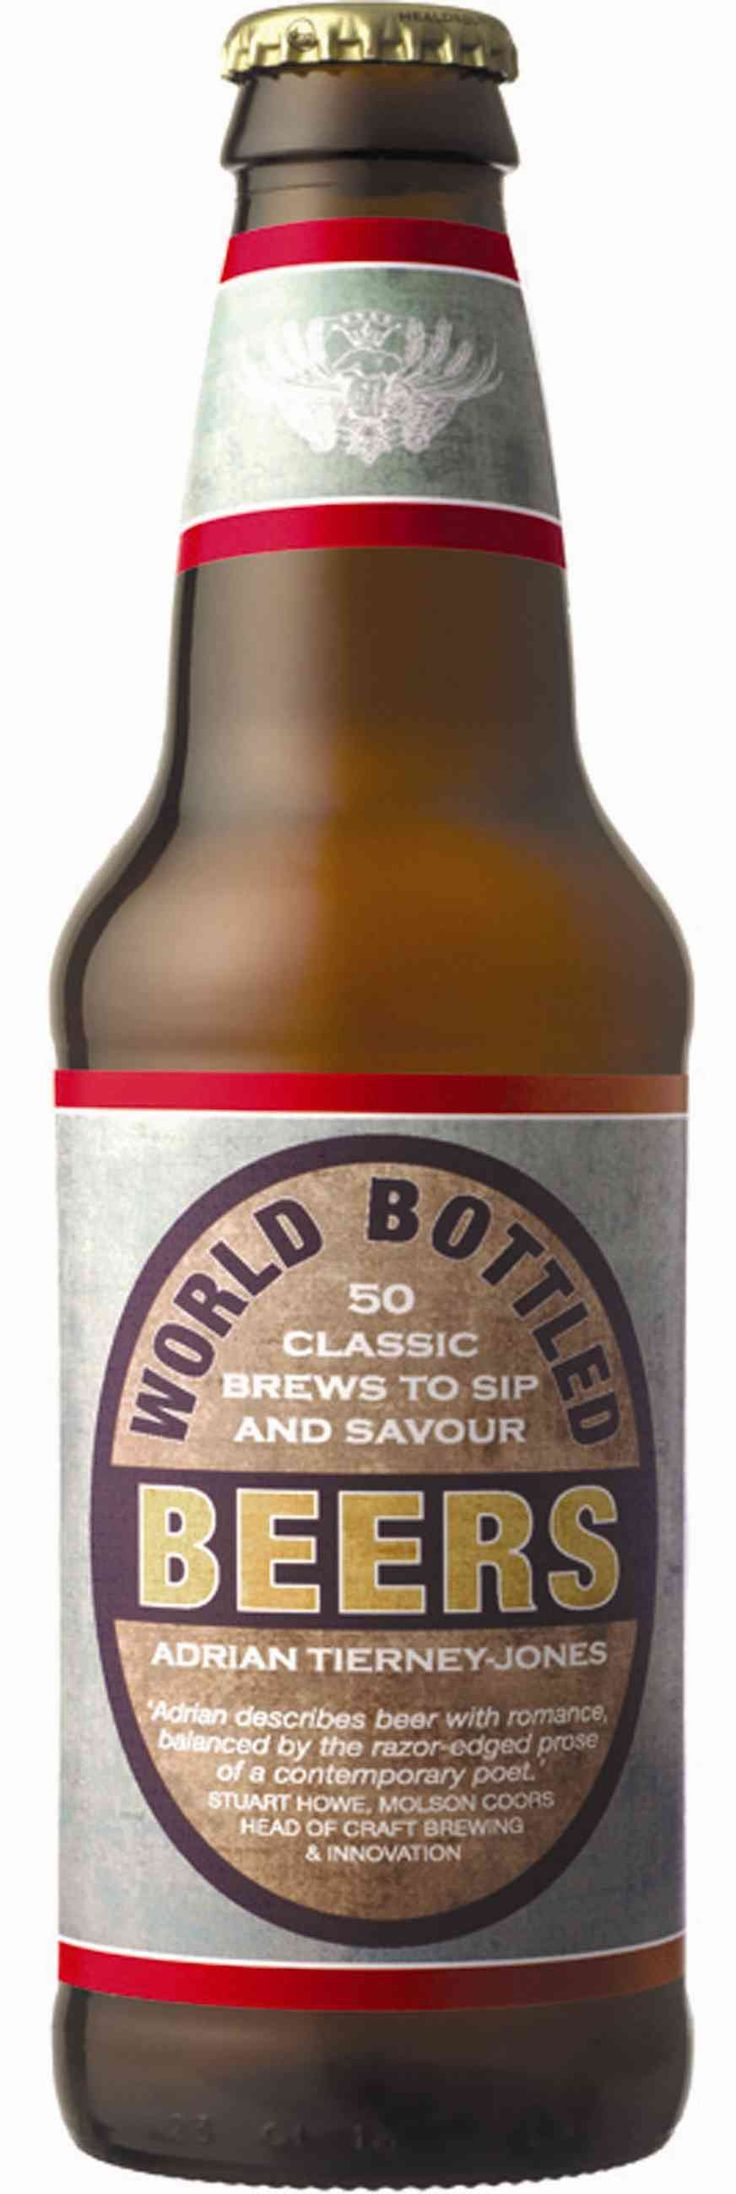 A delightful gift for any discerning beer drinker, this shaped book features 50 of the world's best brews from Adams Broadside in the UK to US classics such as Bear Republic Racer 5 IPA and Sierra Nev